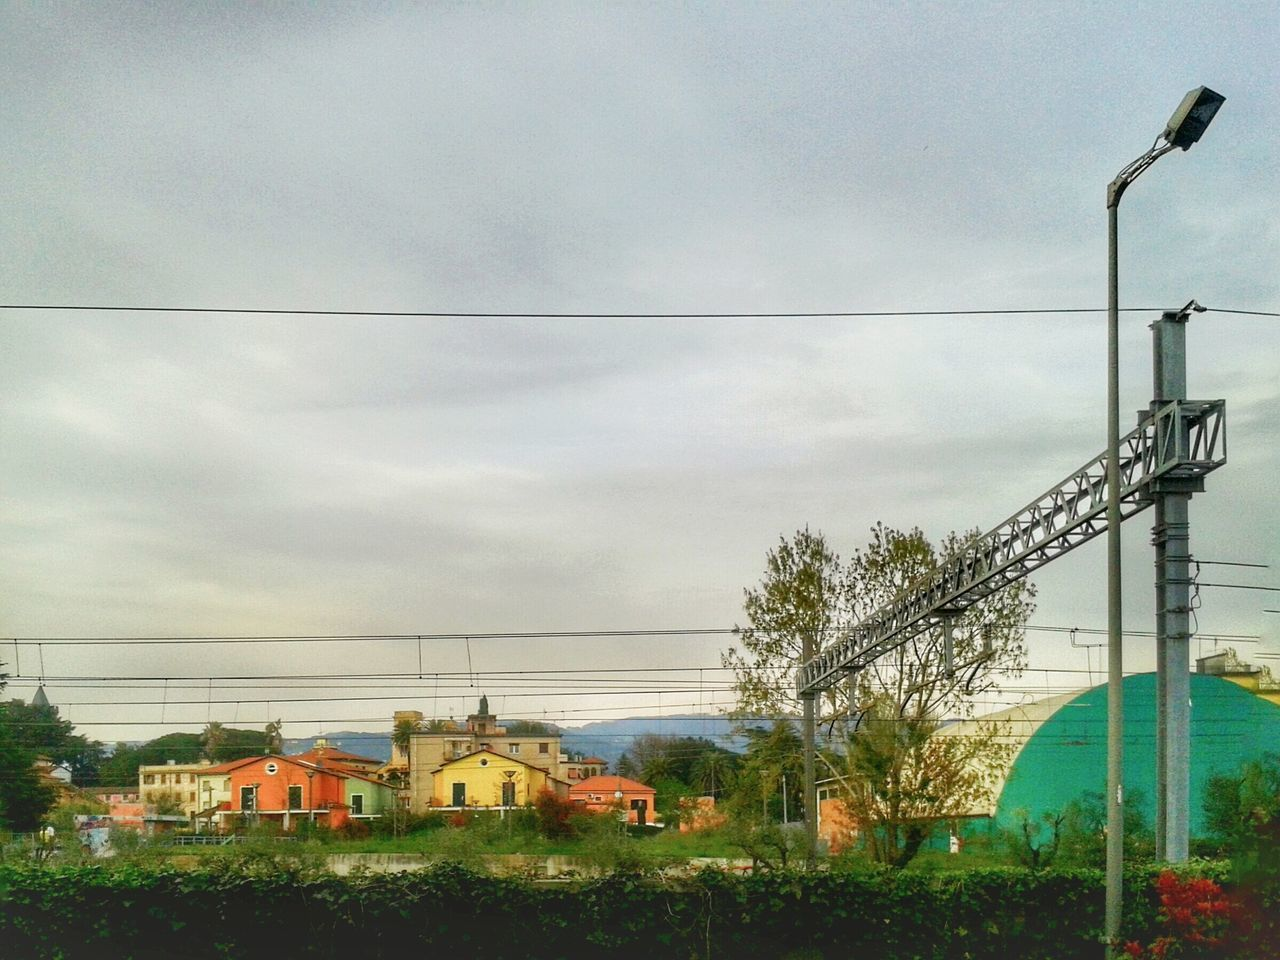 """""""Colourful houses"""", and greenhouse, in Sarzana, Italy. From My Window Railway Houses Landscape Peaceful in spite of the tracks Mobile Photography with S3mini and Camerazoomfx in HDR shooting mode ( Multiple Exposure)"""